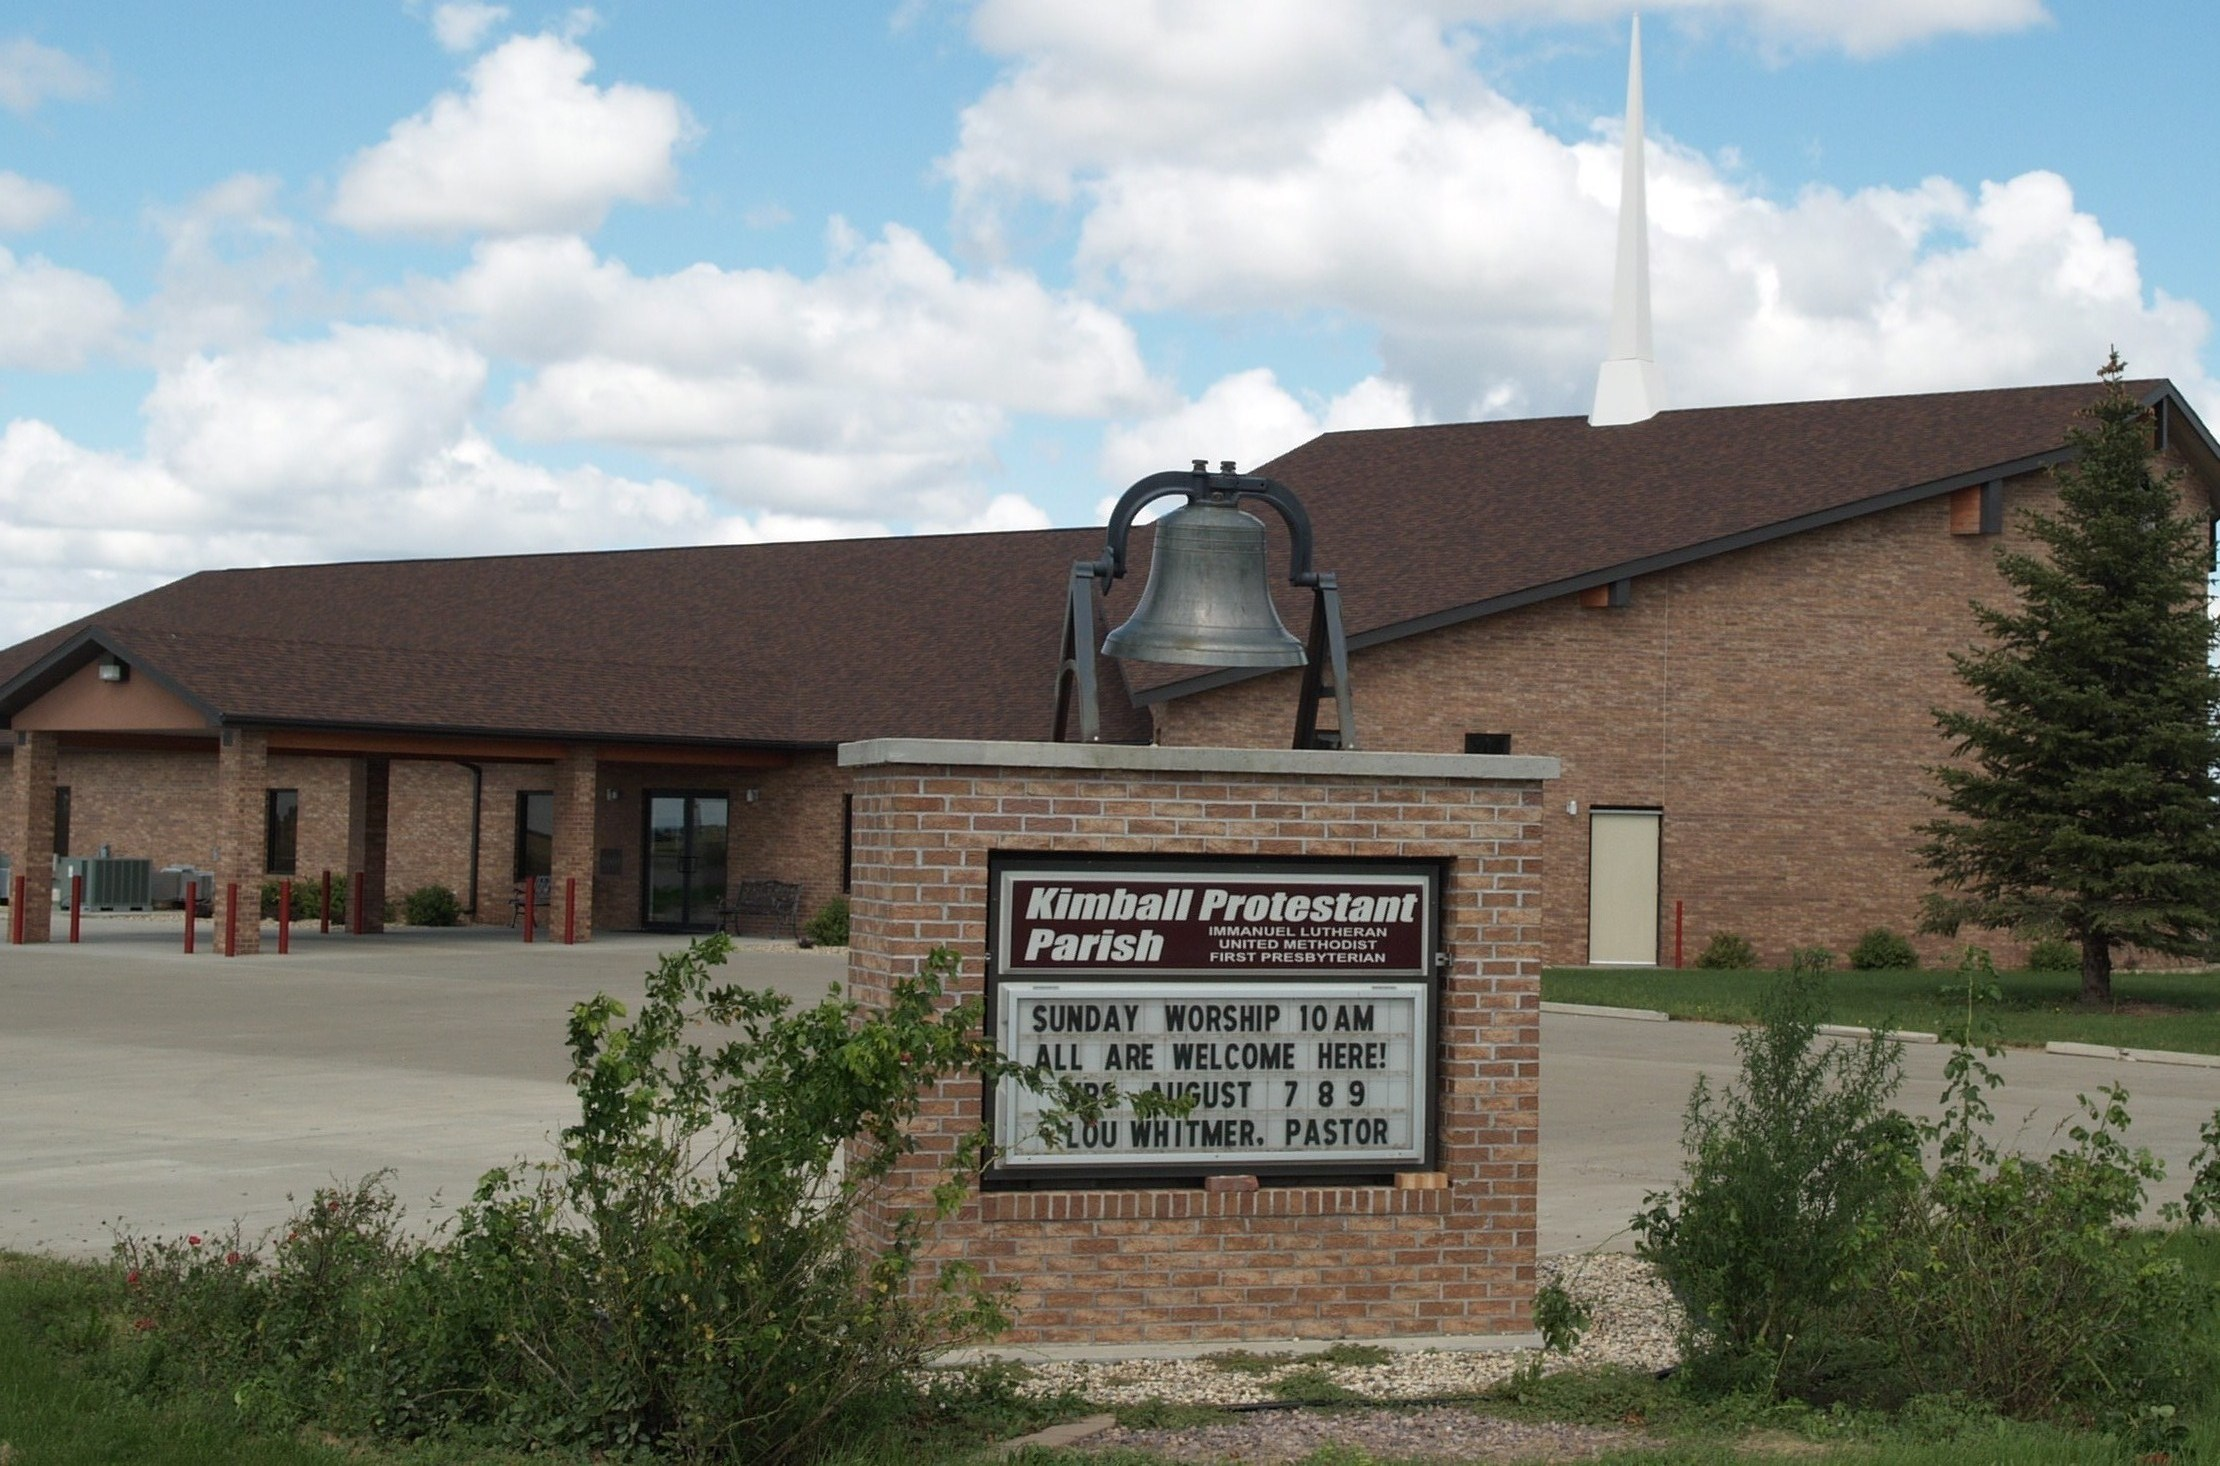 Kimball Protestant Parish in Kimball, S.D.